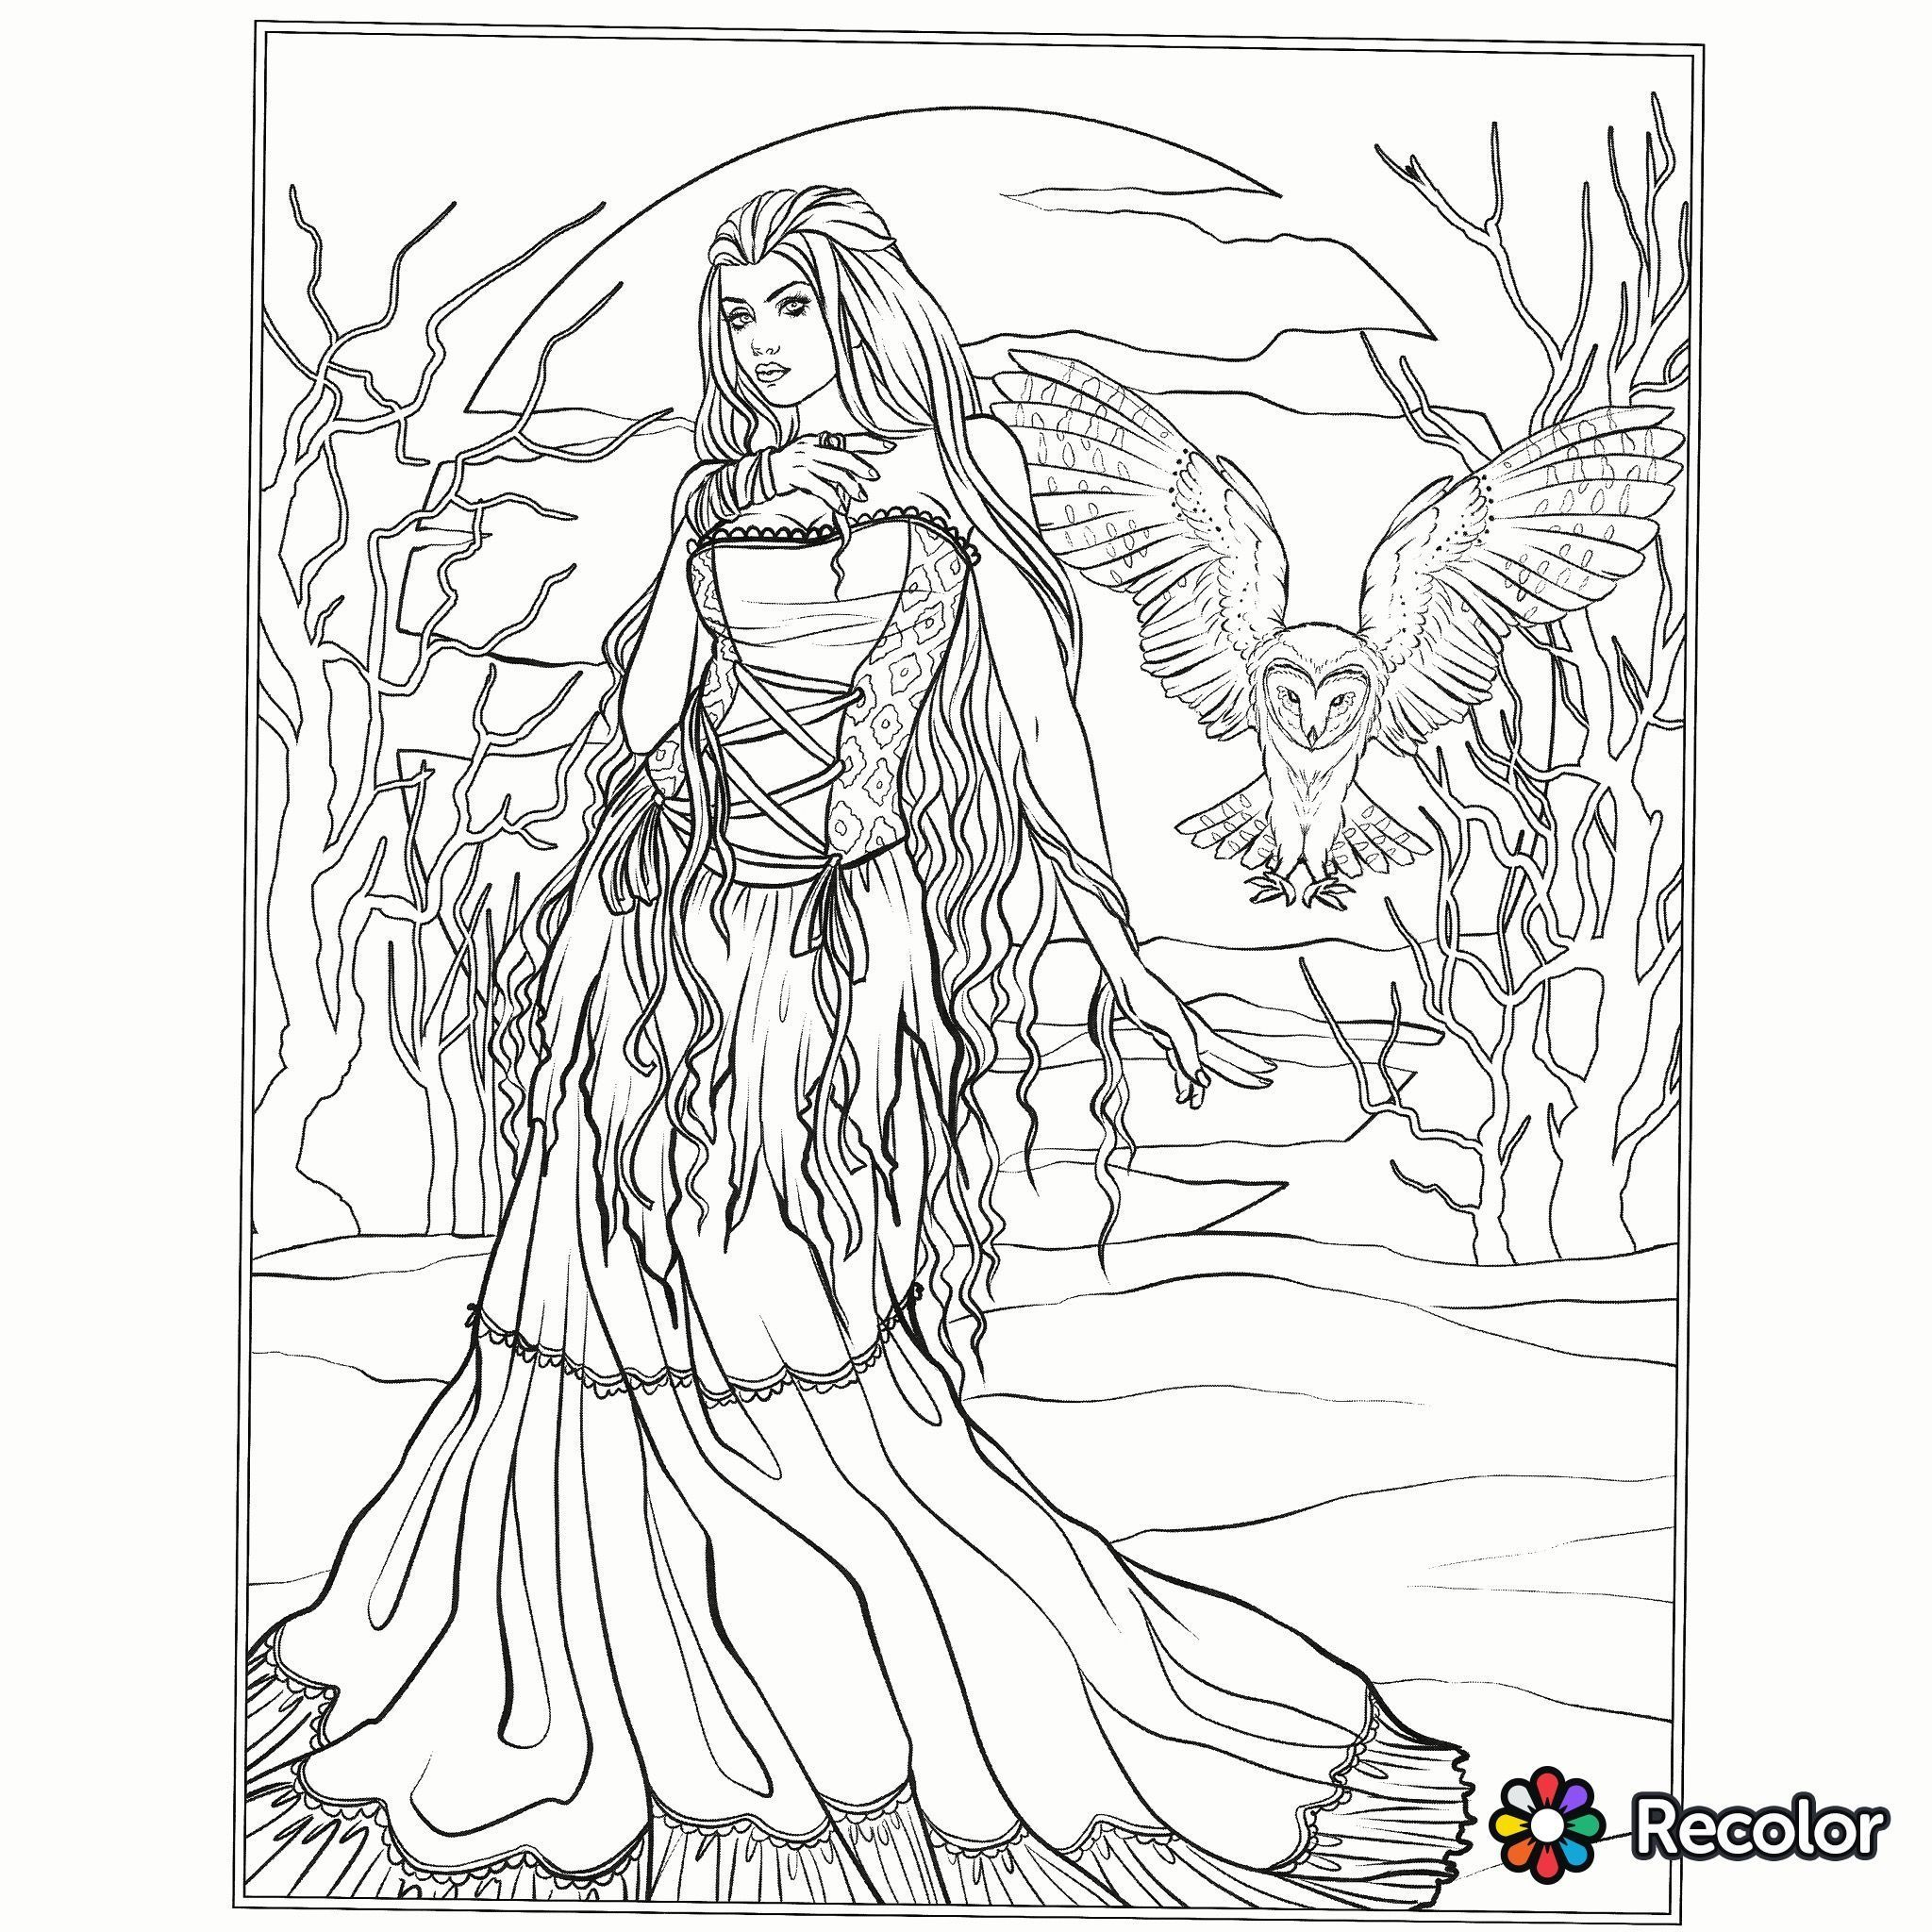 Coloring Pages For Adults Halloween Gothic Coloring Page Fantasy Coloring Pages Coloringpages Colo Fairy Coloring Pages Witch Coloring Pages Fairy Coloring